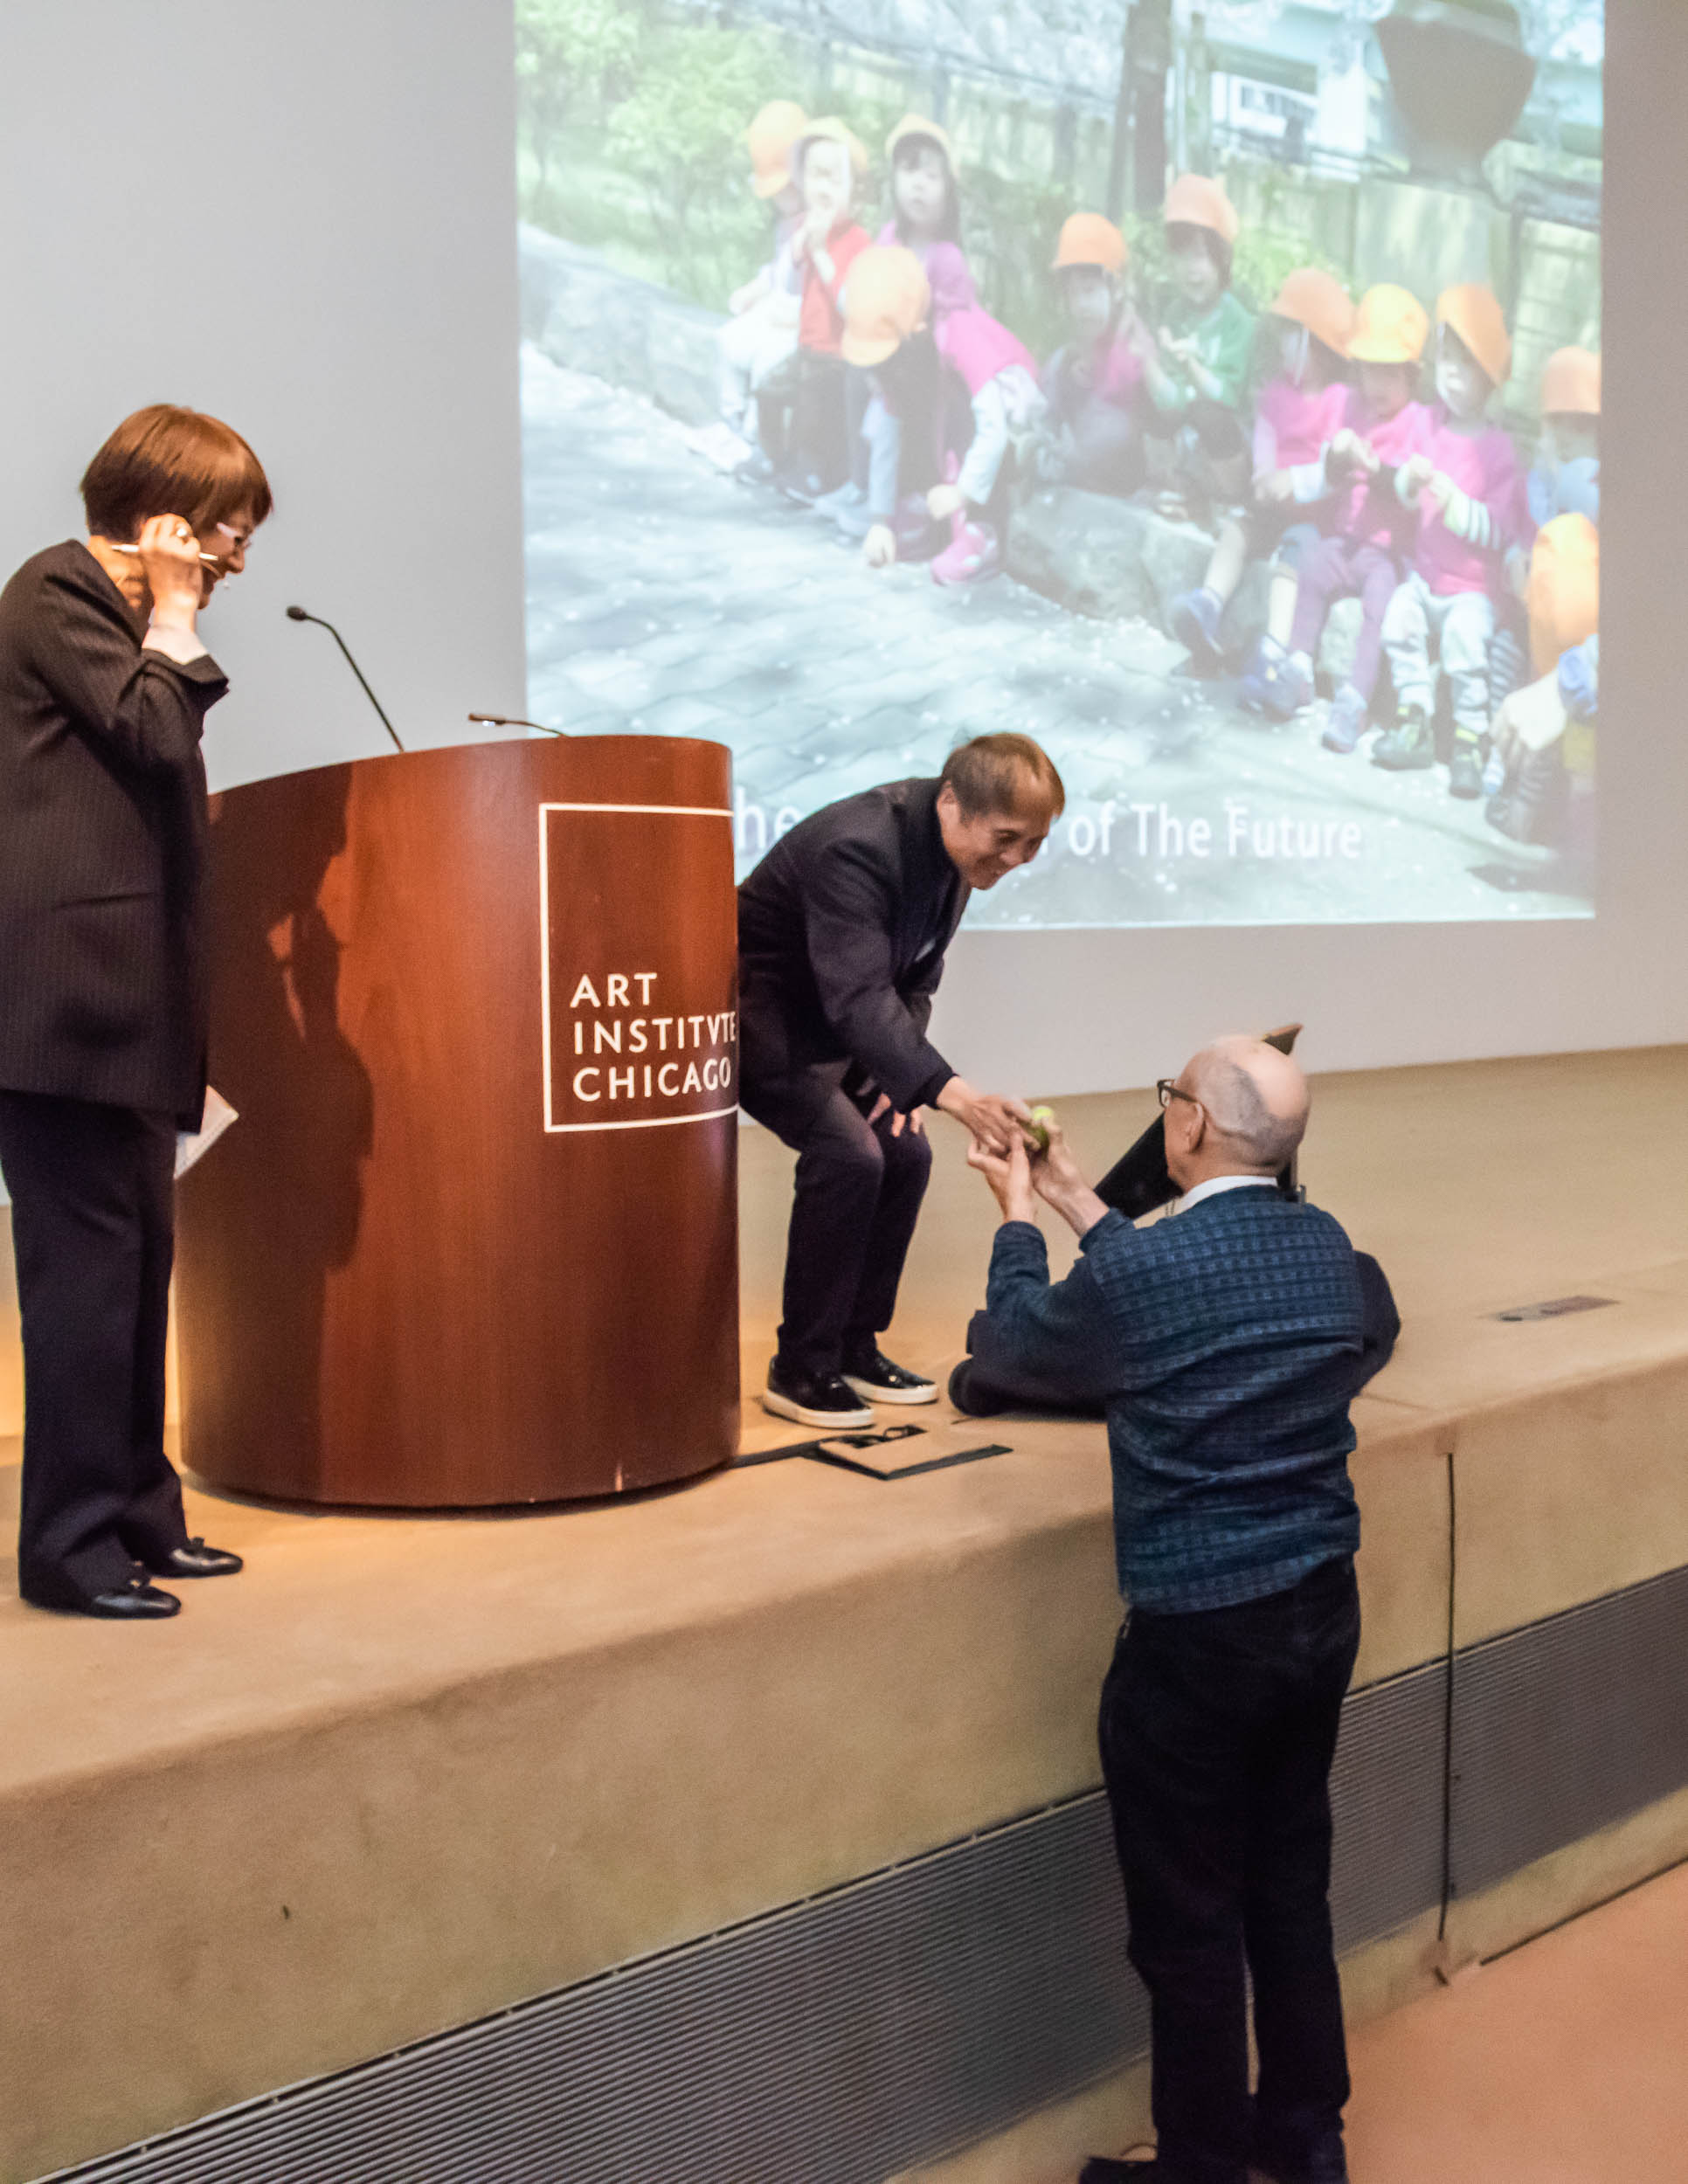 181011 - Tadao Ando Lecture - mark campbell photography-30_Resized.jpg